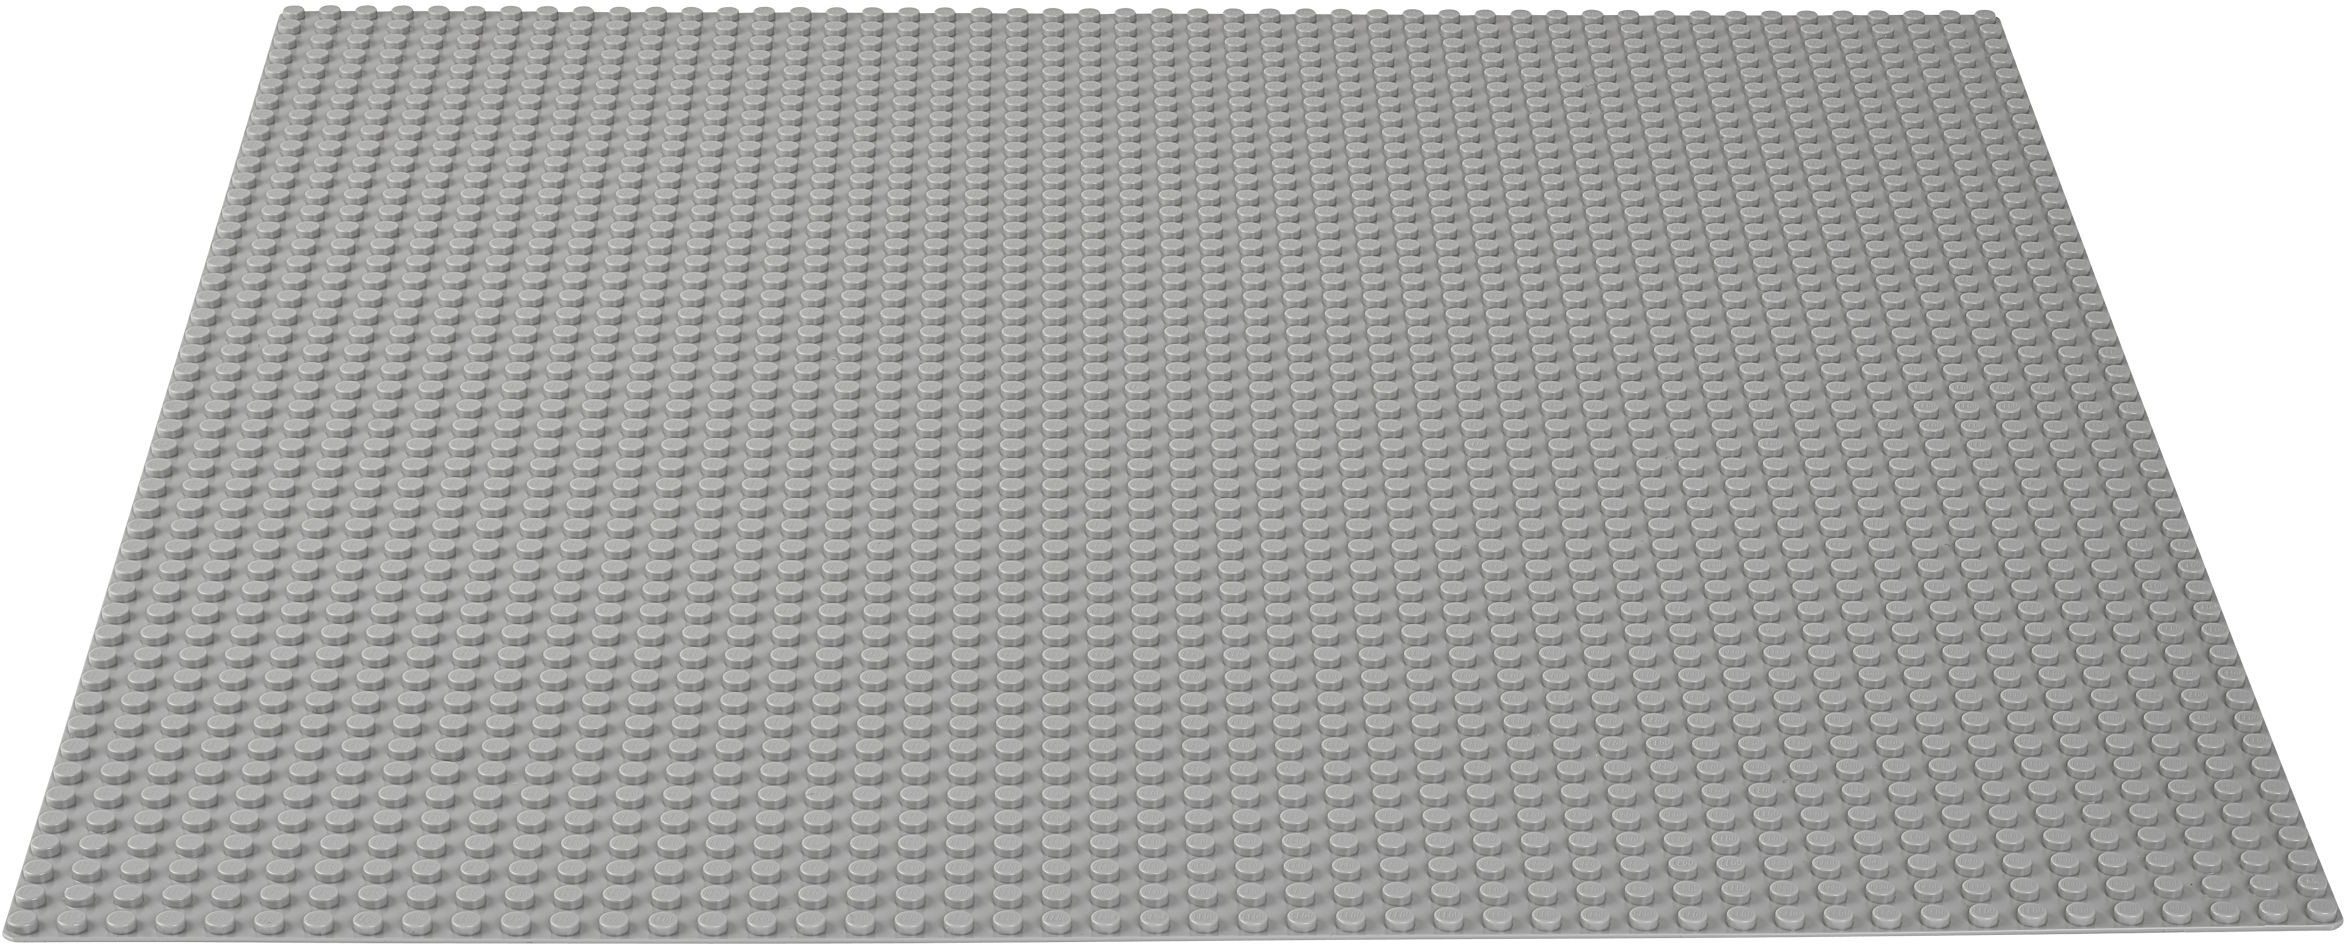 Lego 10701 Baseplate Gray Bricks Amp More Classic